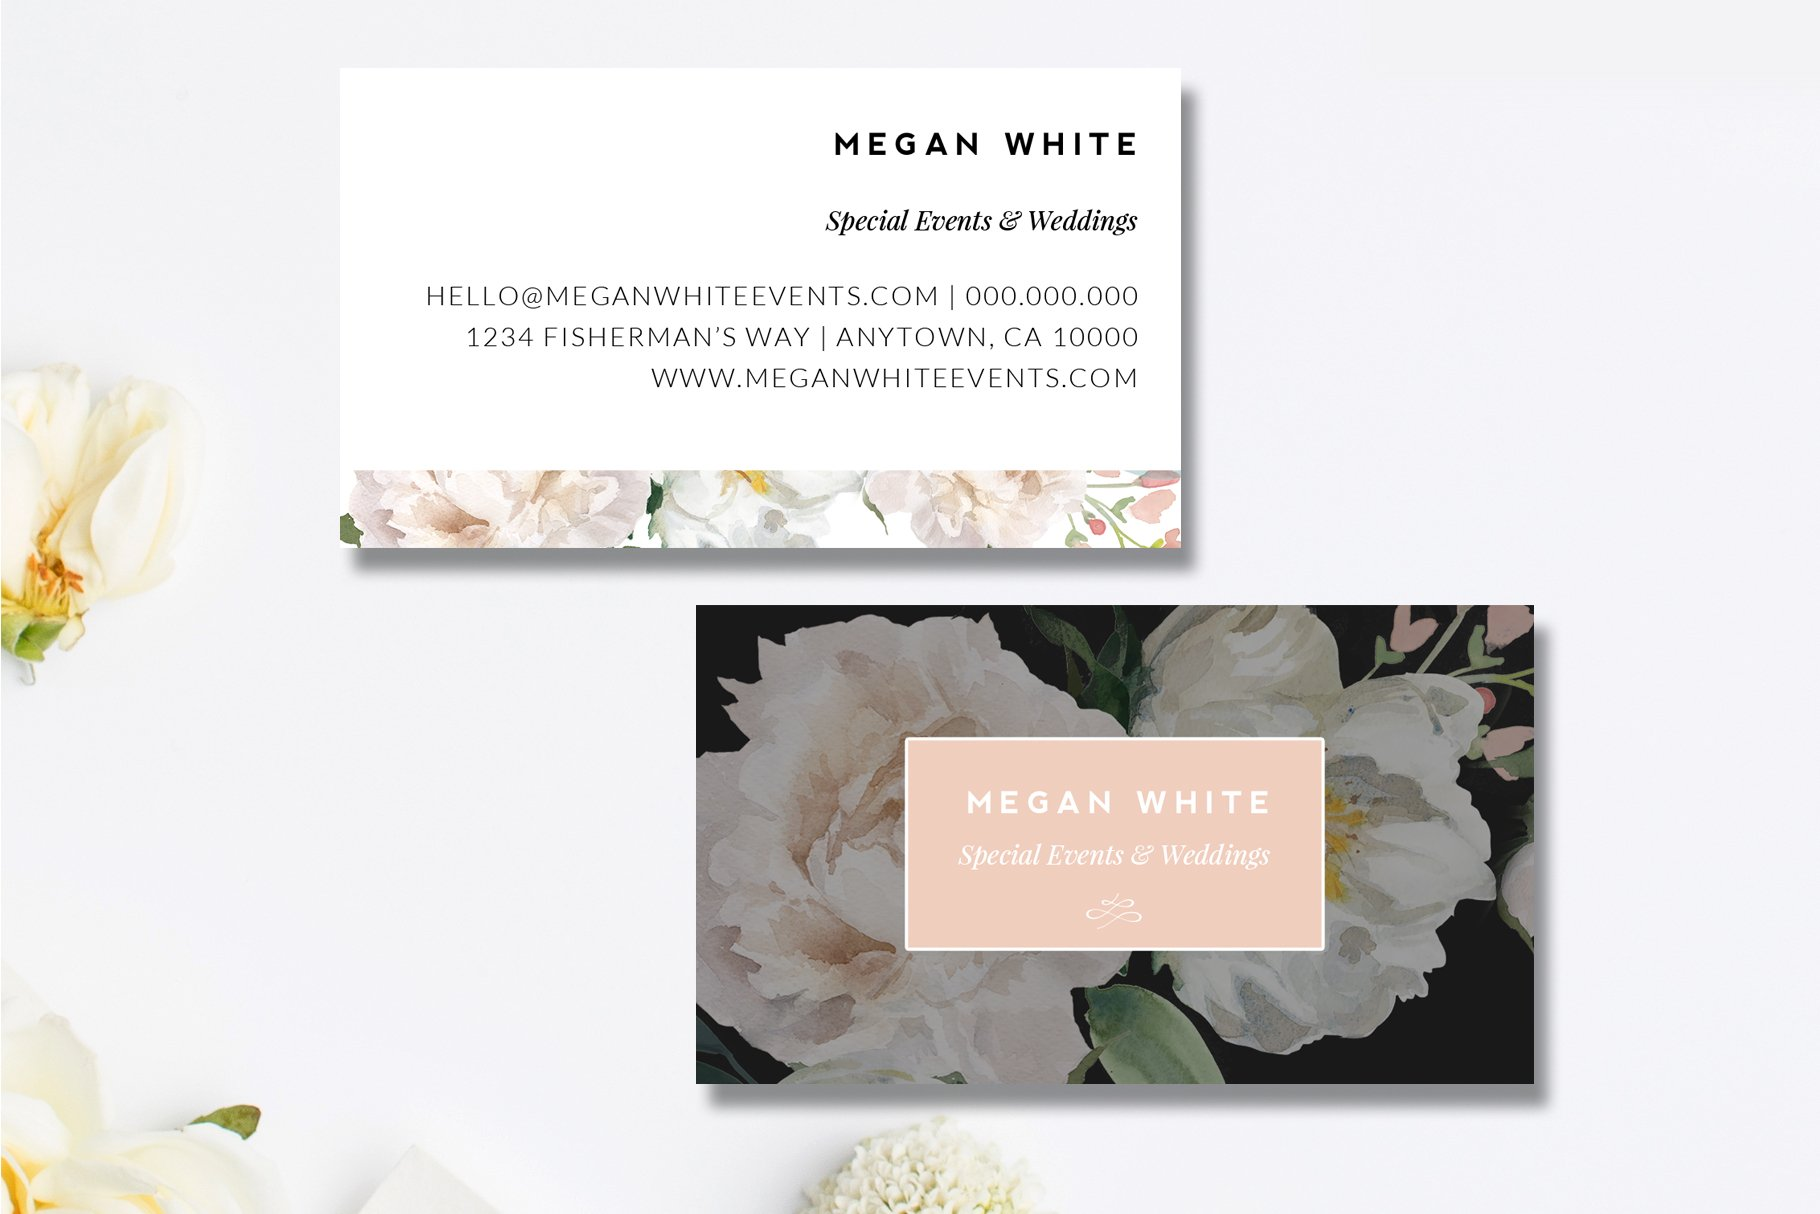 Wedding Planner Business Card ~ Business Card Templates ~ Creative ...